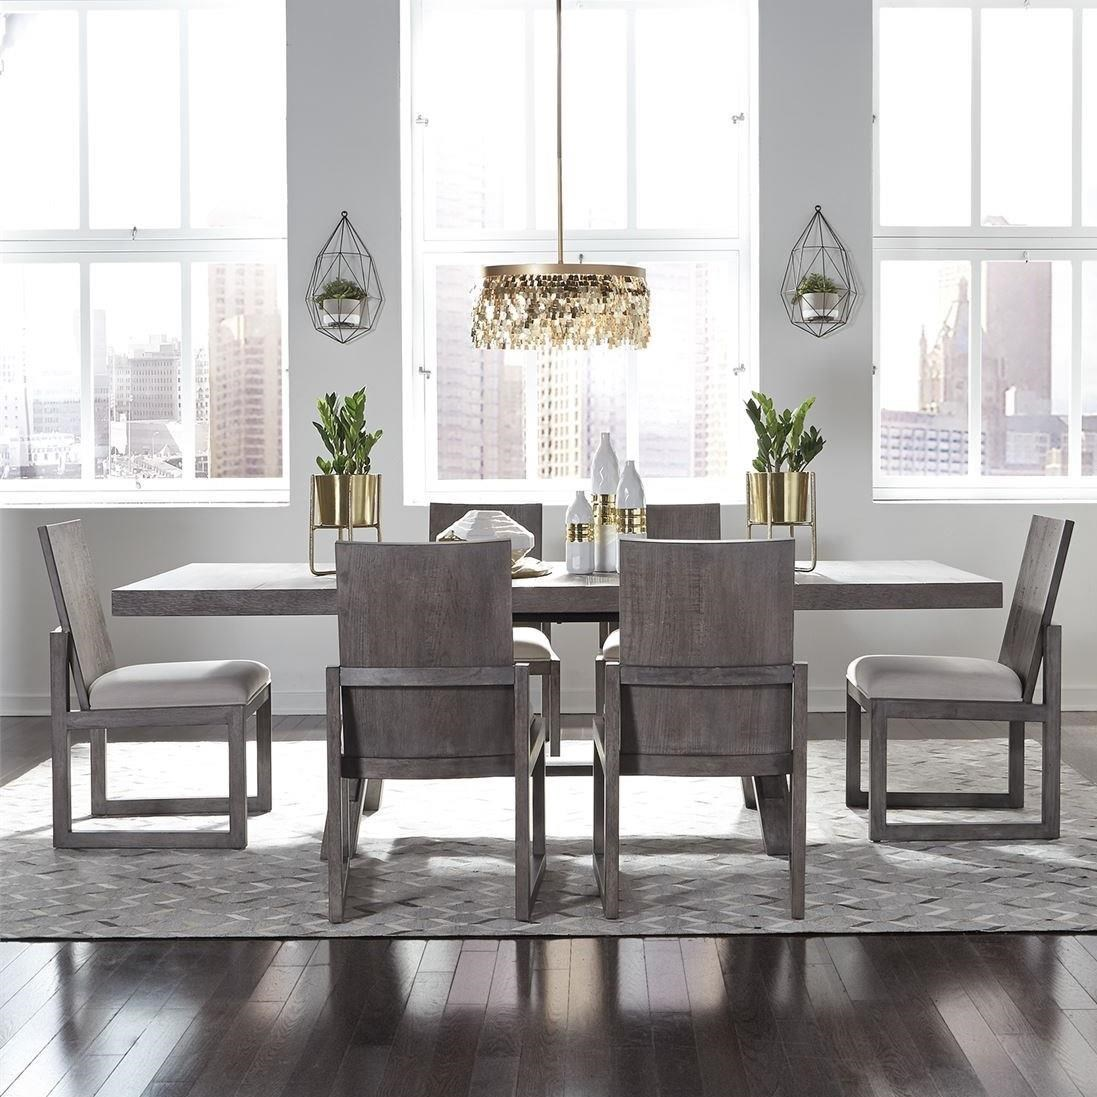 Modern Farmhouse 7-Piece Trestle Table and Chair Set by Liberty Furniture at Beck's Furniture